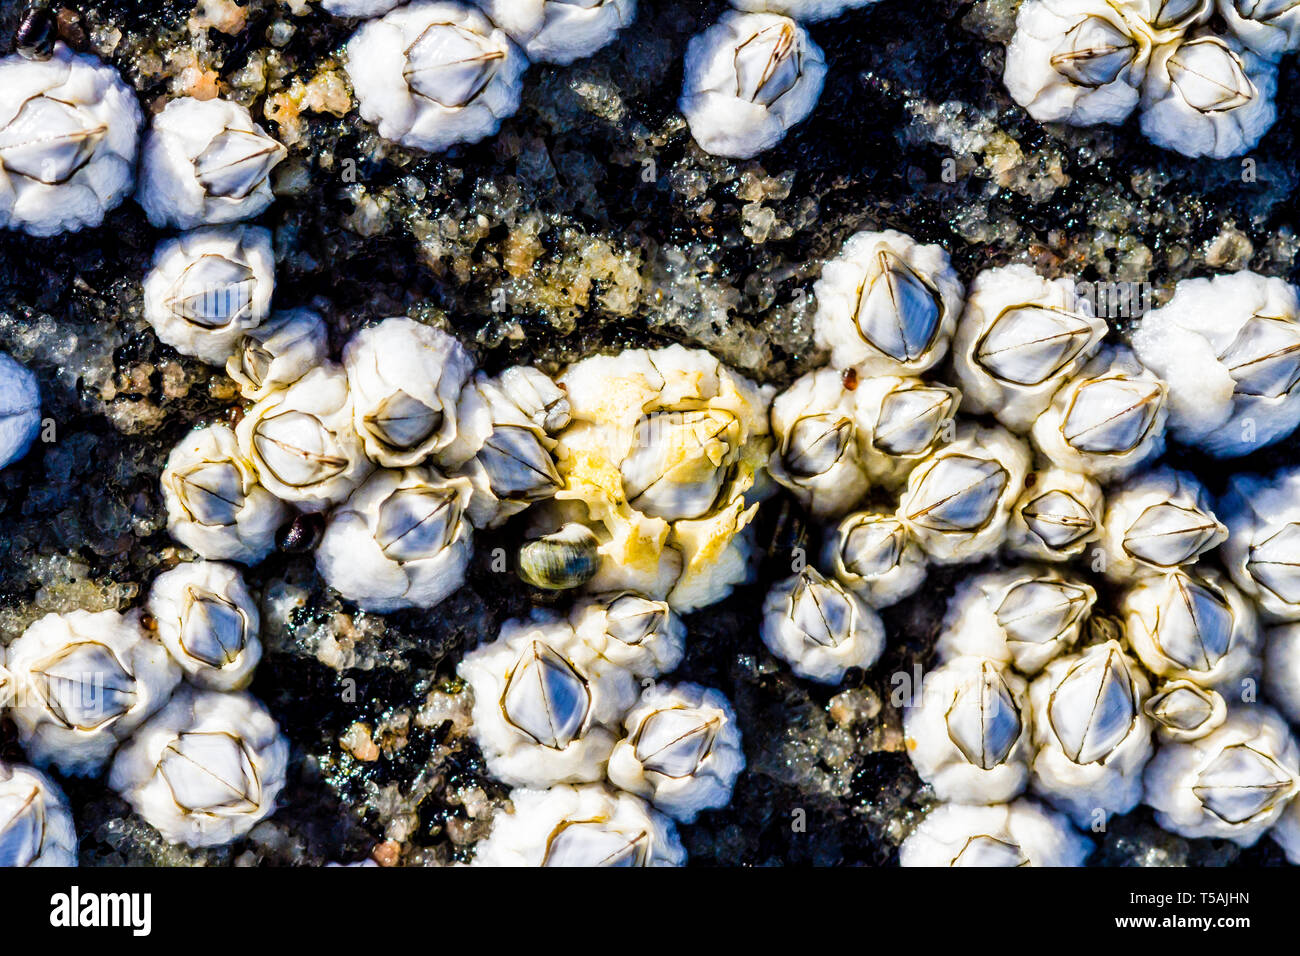 View of the limestone houses of crustaceans from above. Sea mollusks Semibalanus balanoides on the littoral of the White Sea at low tide. - Stock Image